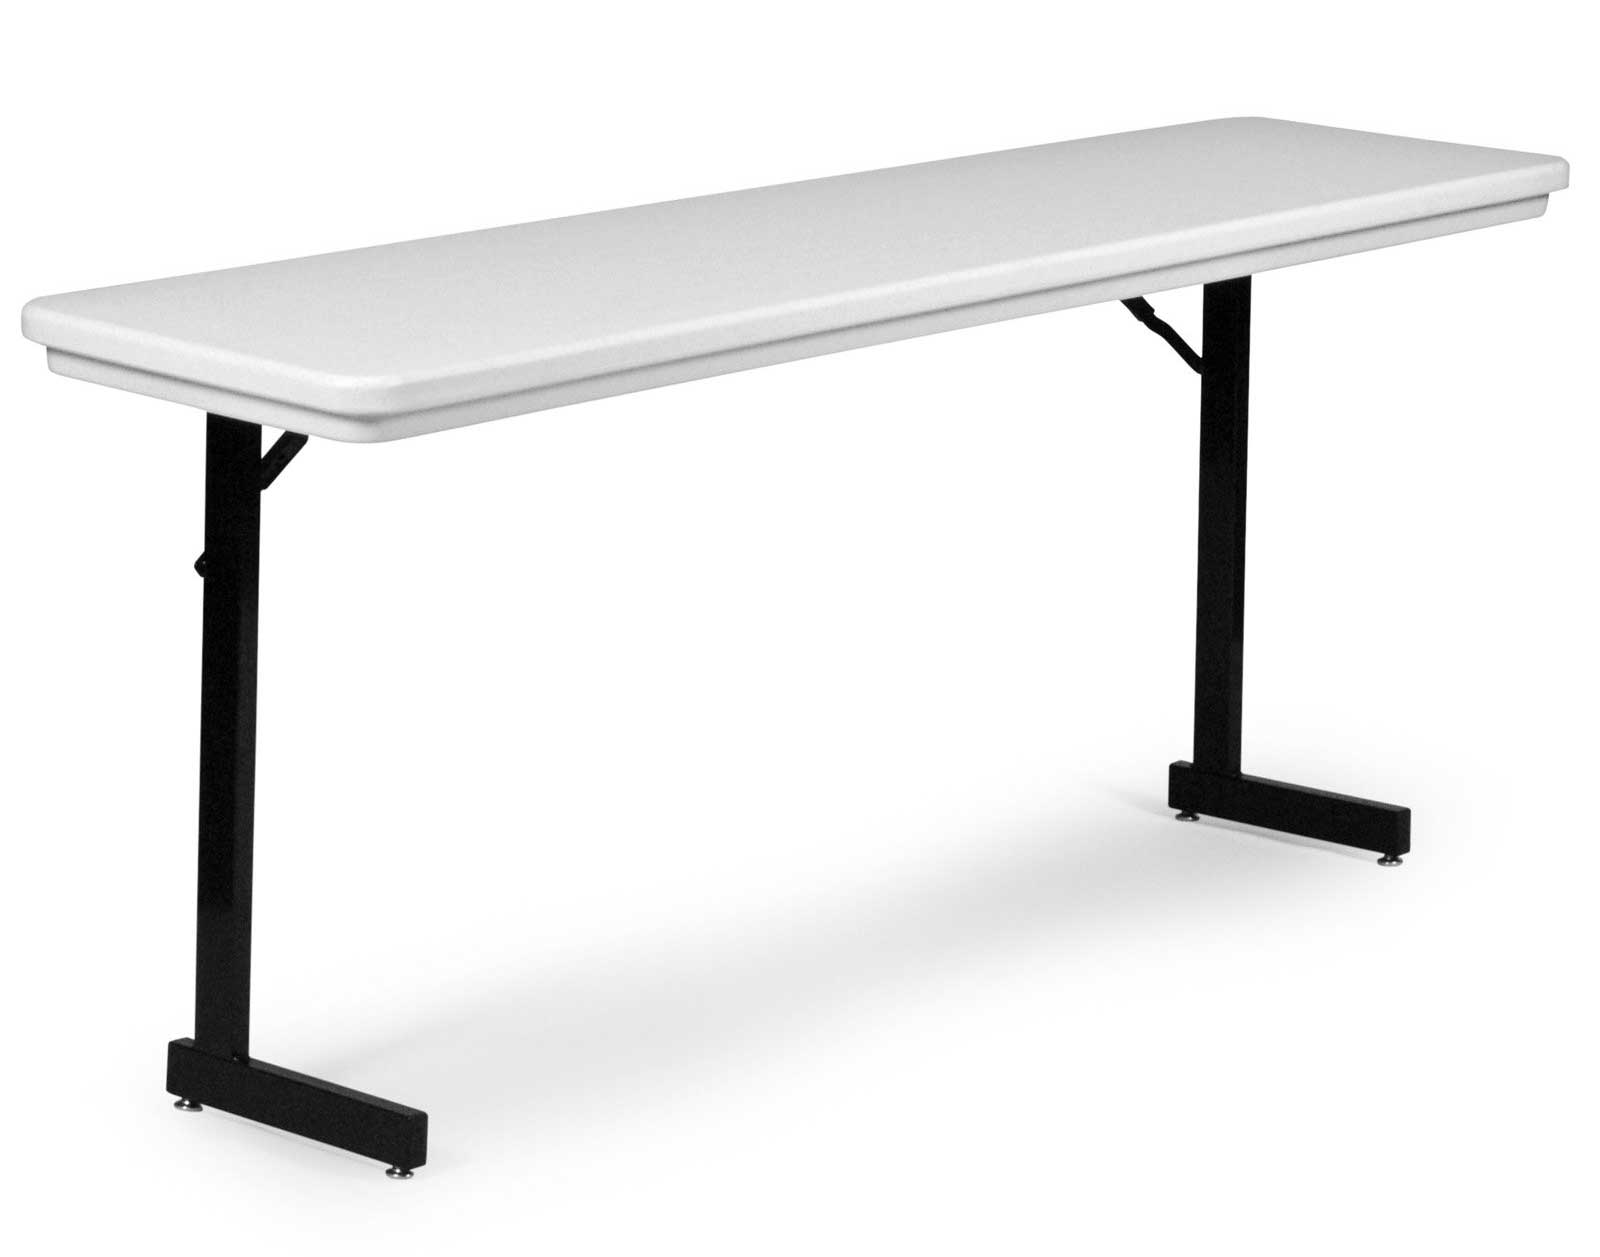 Correll T-Leg Rectangle Full Length Folding Table